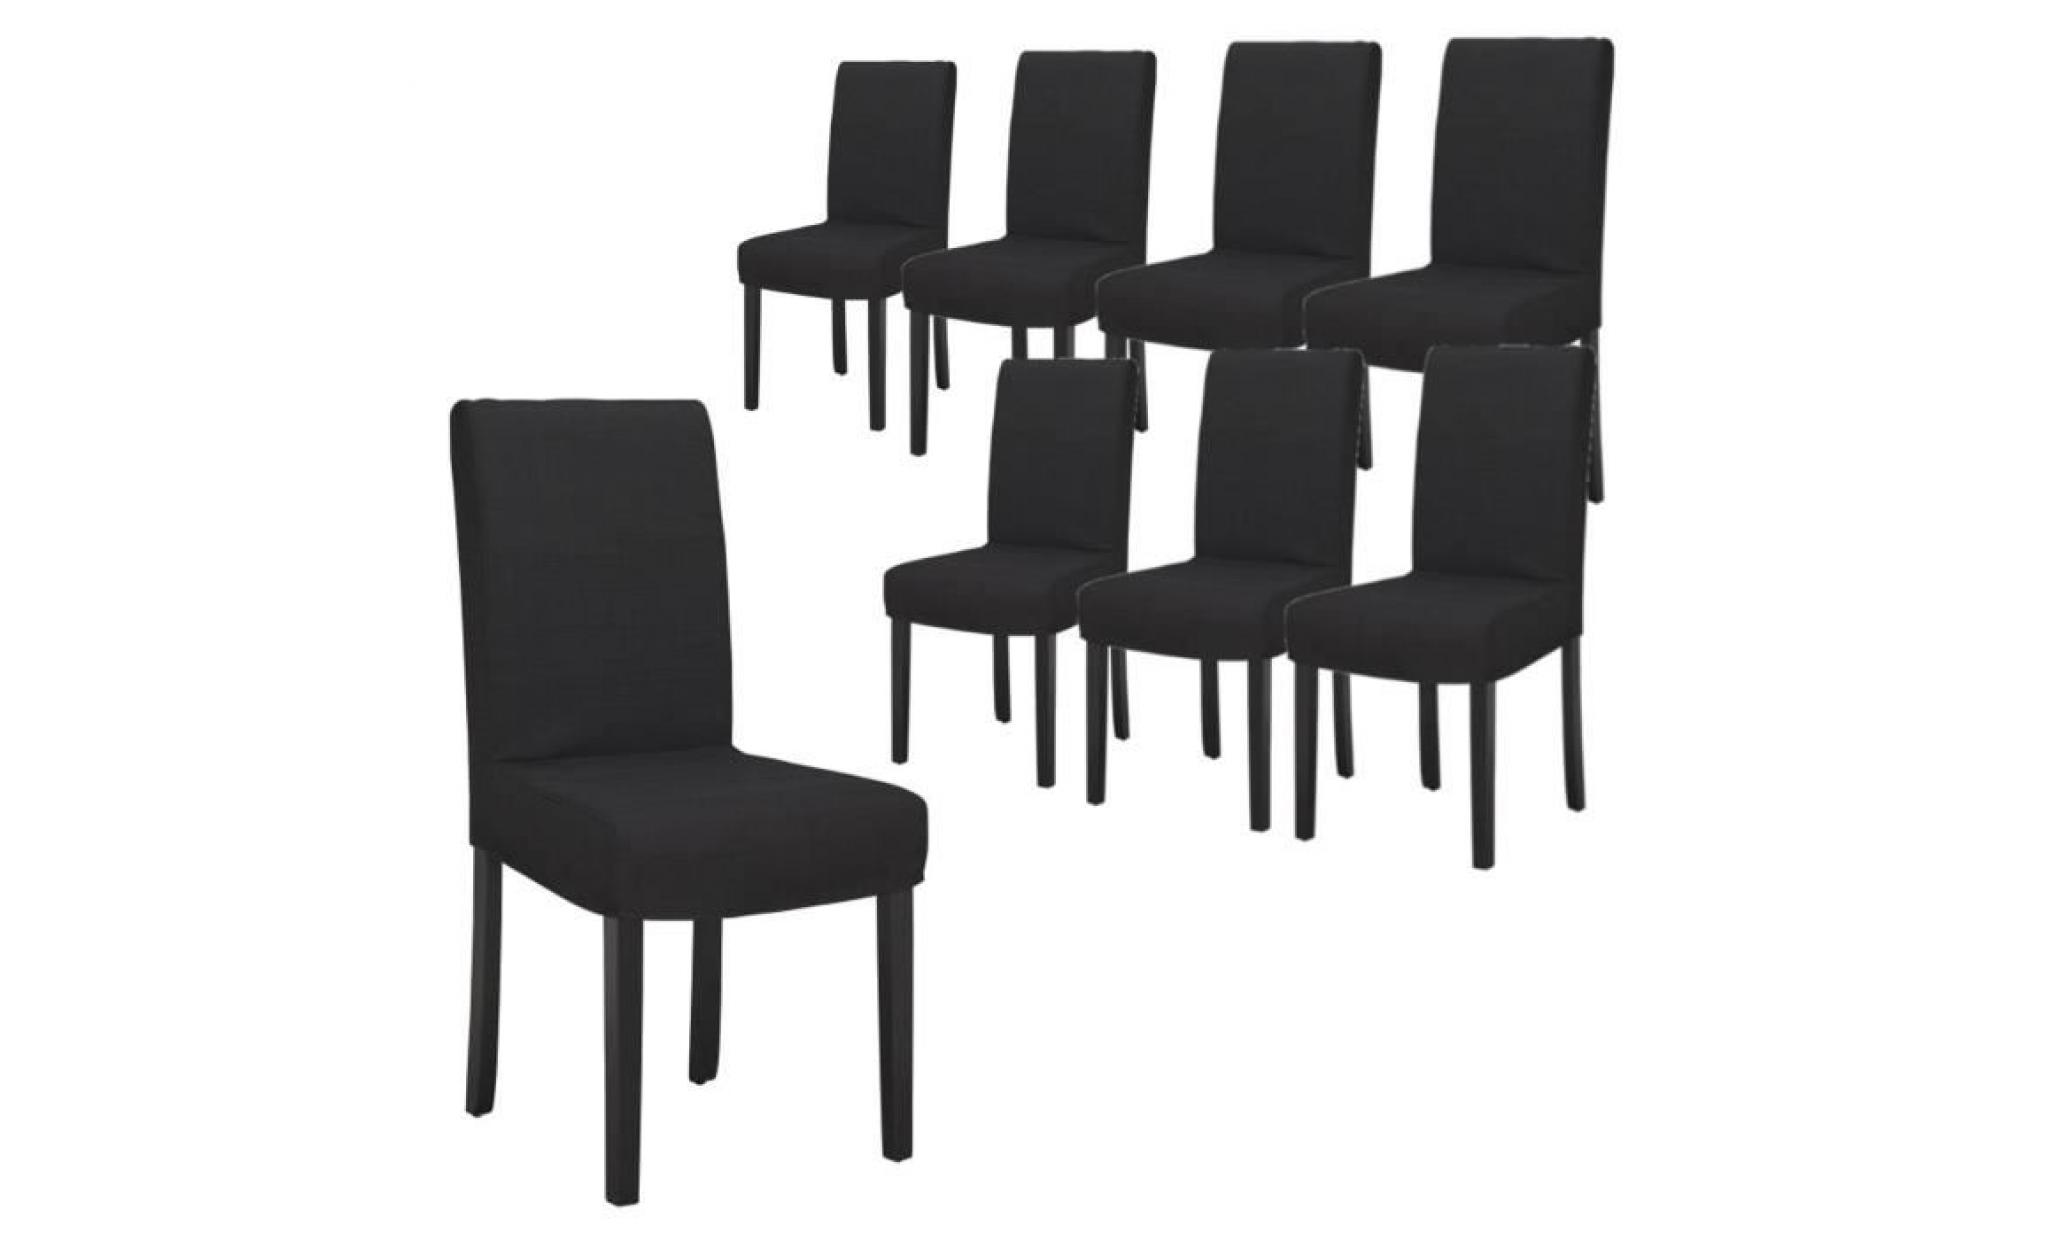 strip lot de 8 chaises de salle manger d houssables noires achat vente chaise salle a manger. Black Bedroom Furniture Sets. Home Design Ideas